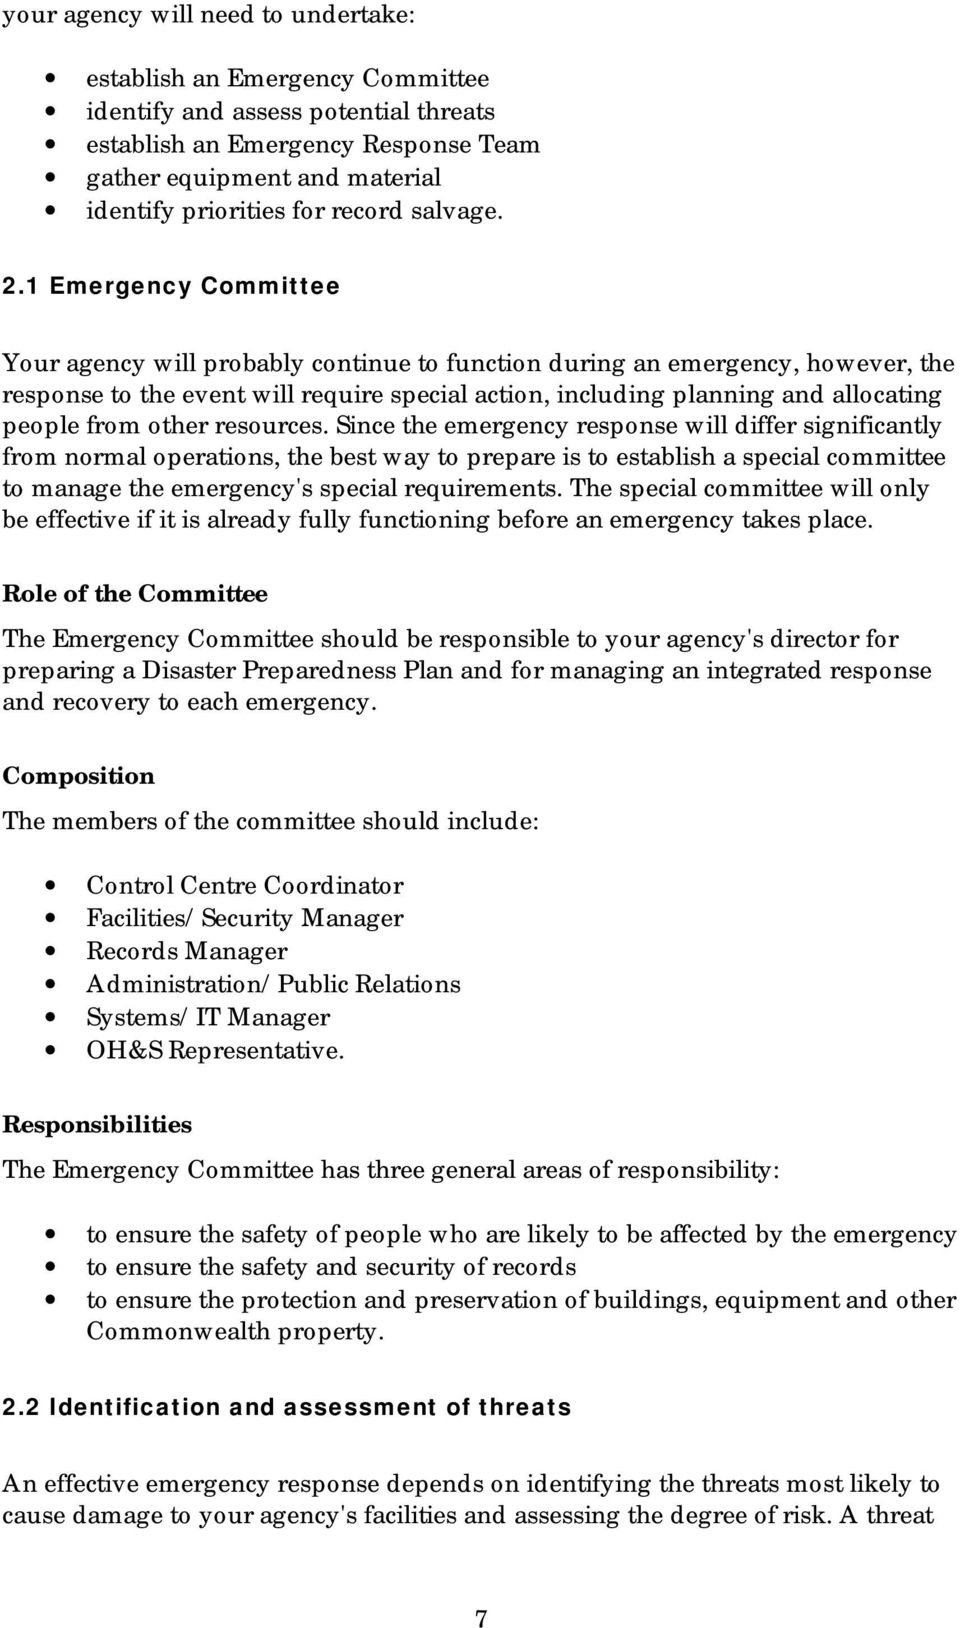 1 Emergency Committee Your agency will probably continue to function during an emergency, however, the response to the event will require special action, including planning and allocating people from